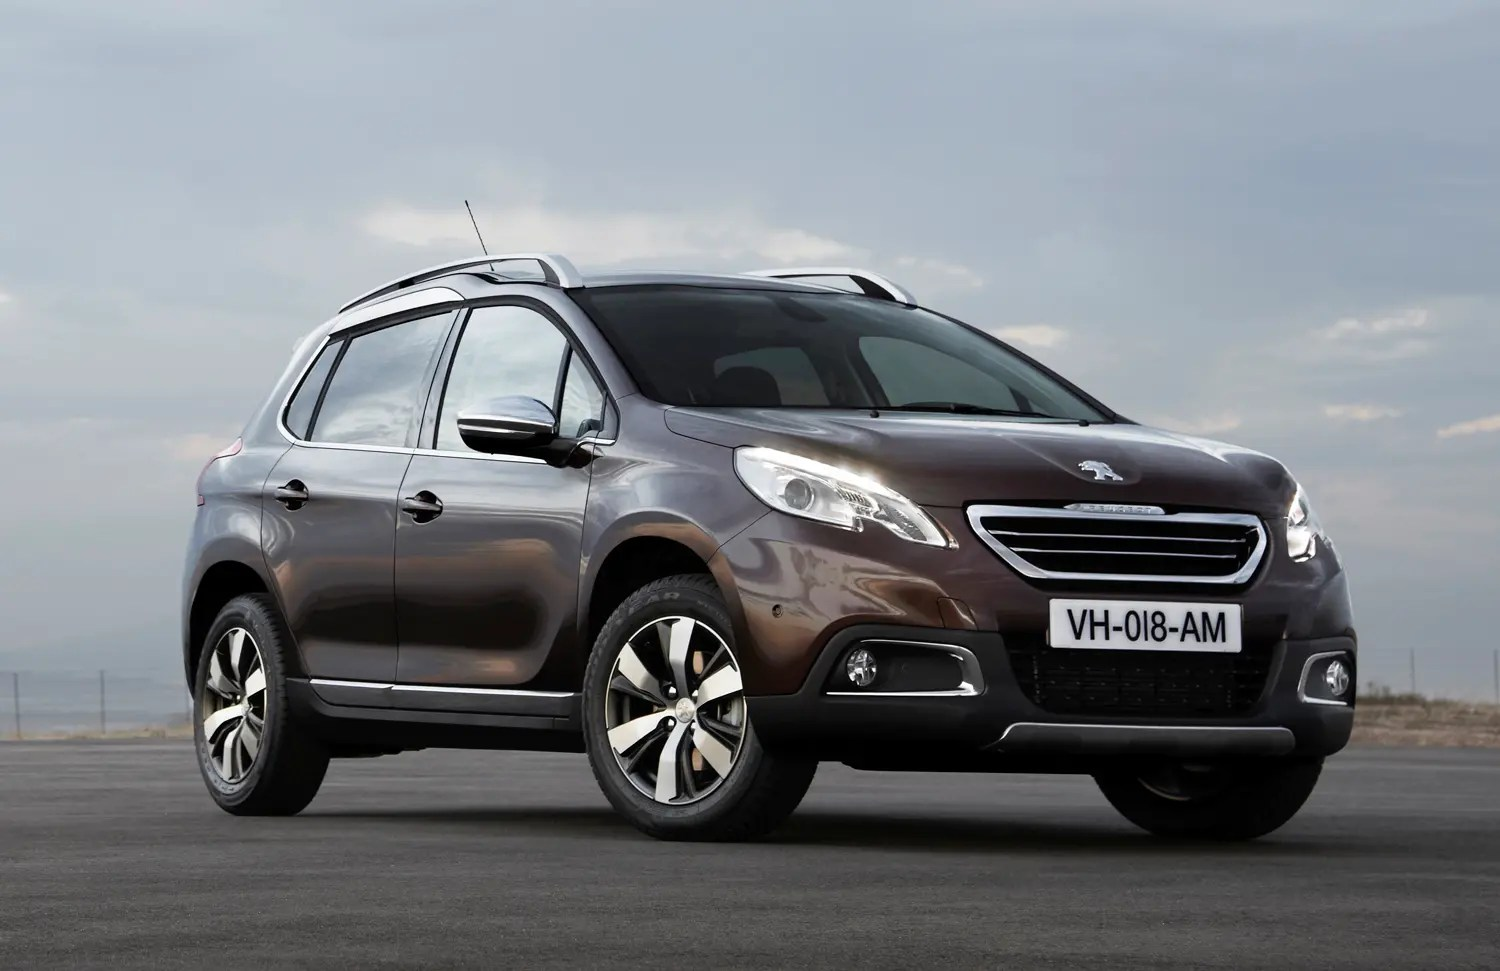 Peugeot 2008 Automatic Review Peugeot 2008 2019 Mpg Running Costs Economy Co2 Parkers